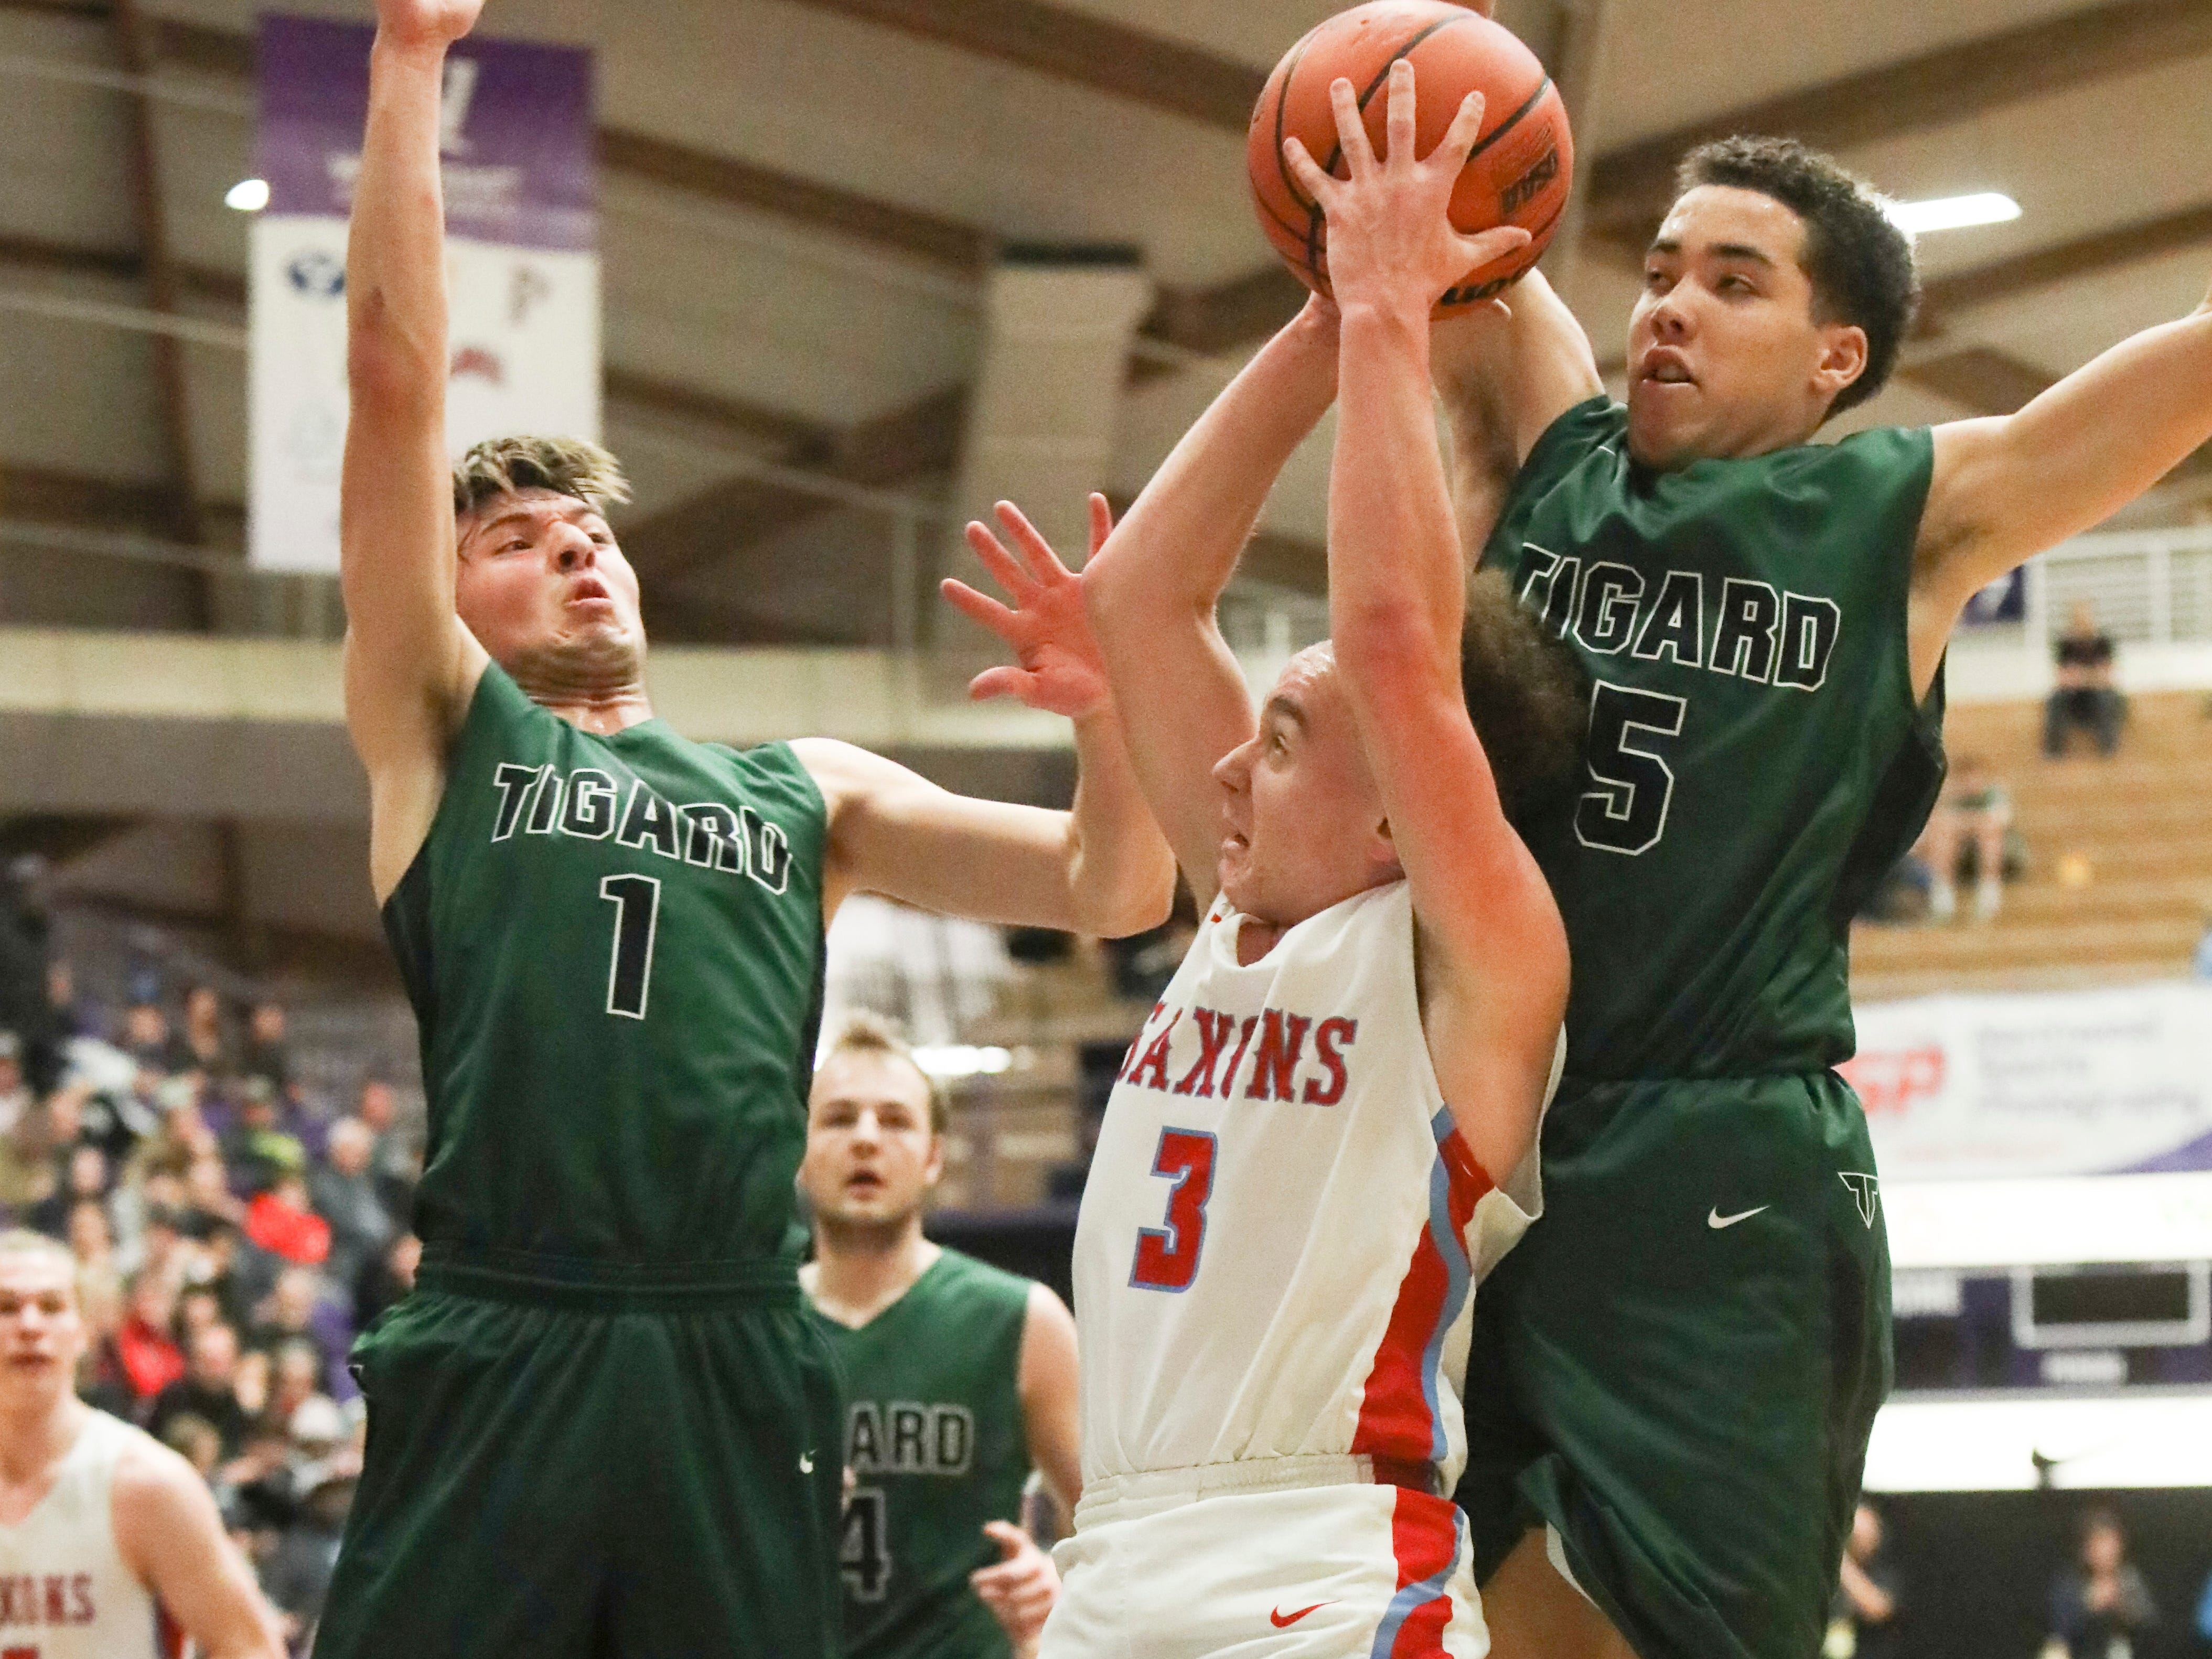 South Salem's Trey Galbraith (3) tries to shoot through Tigard's Diego Lopez (1) and Drew Carter (5) during the OSAA 6A boys basketball state tournament quarterfinal on Wednesday, March 6 at Chiles Center.